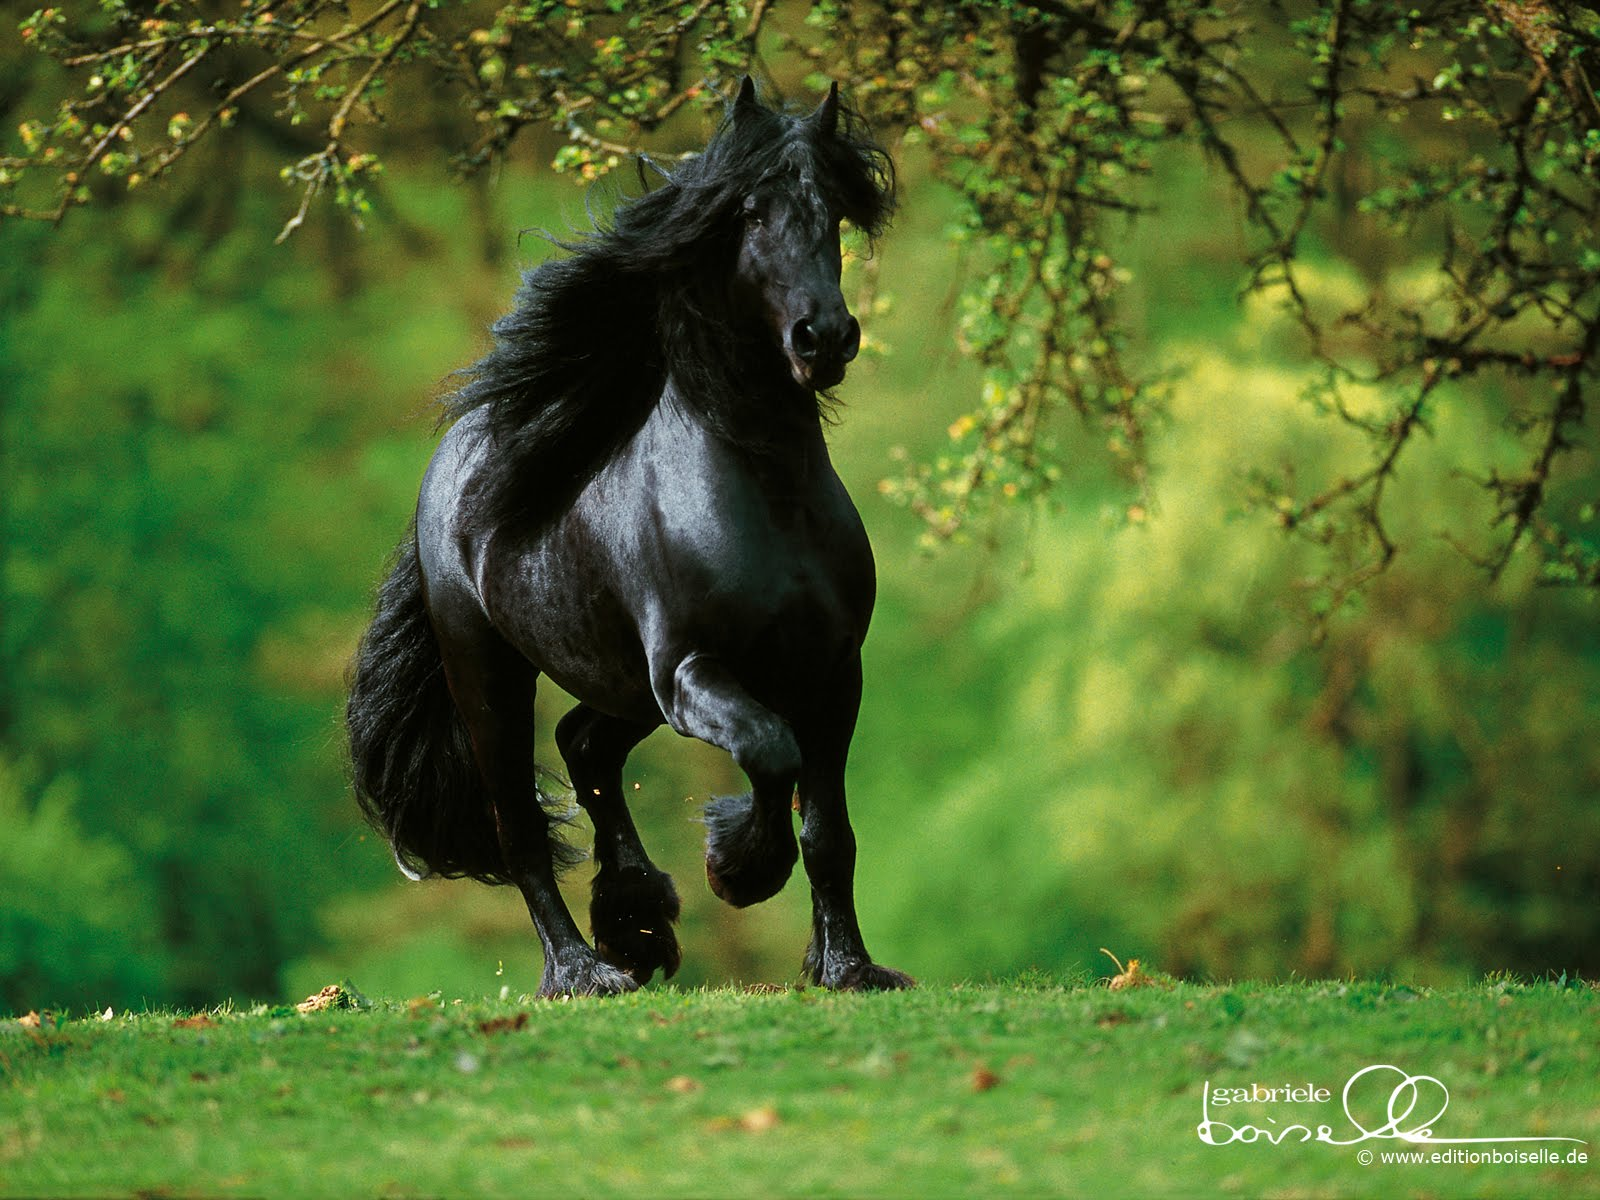 Animals Zoo Park: 12 Black Horse Wallpapers, Black Horses Beautiful